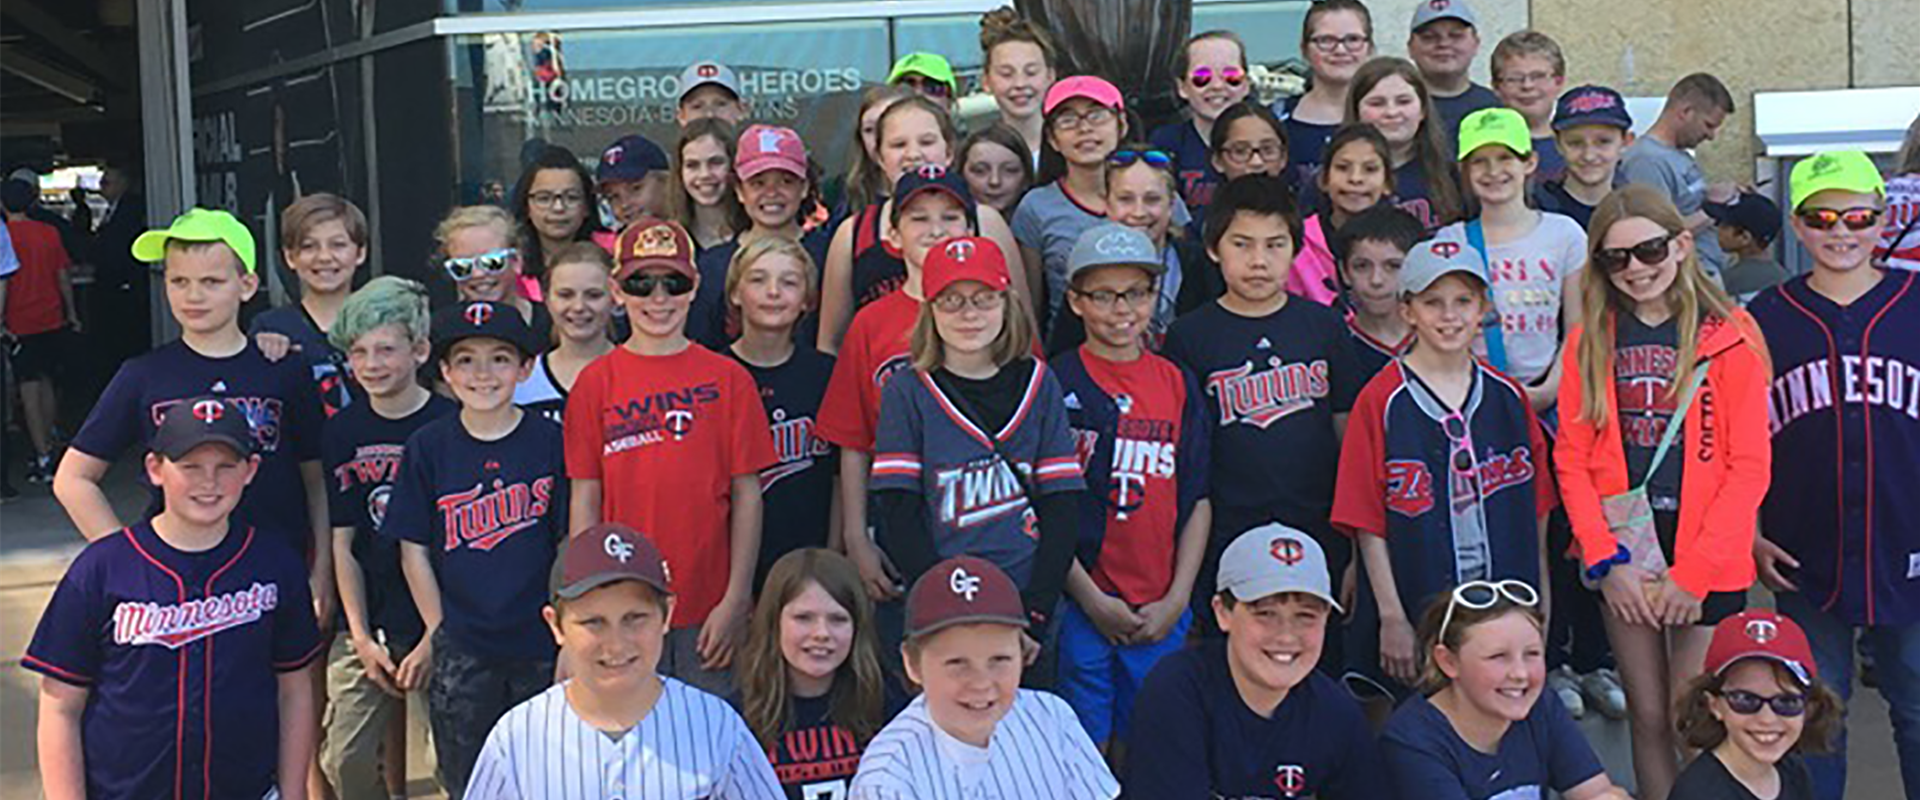 The school patrol got to enjoy a trip to the Twins game! #GoTwins